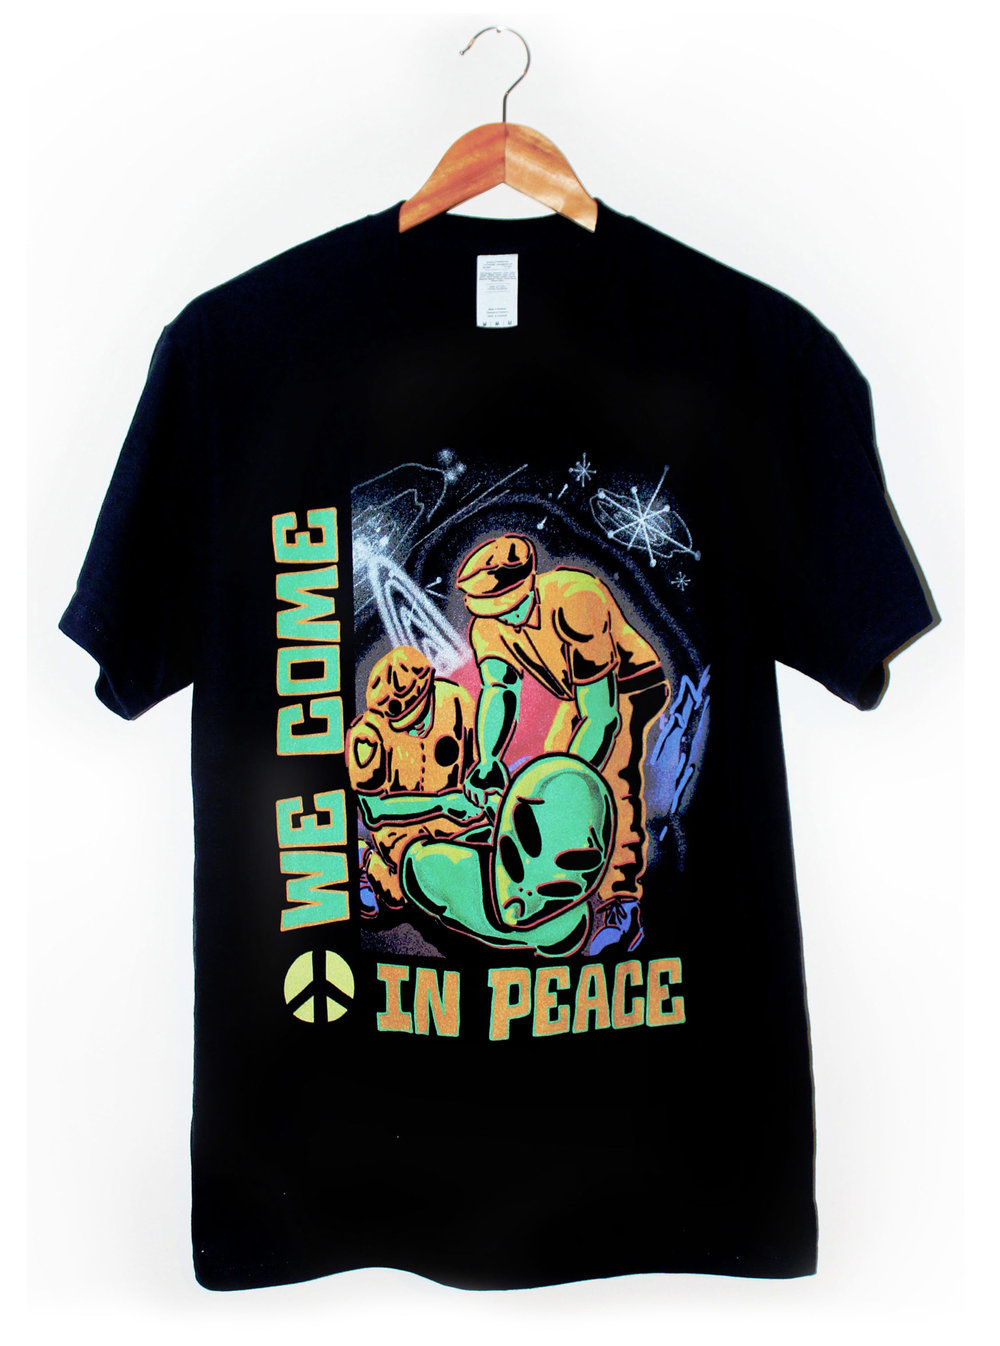 2+WE-COME-IN-PEACE-ALIEN-GRAPHIC-TEE-AKONE-AK0ONE-AK1.jpg